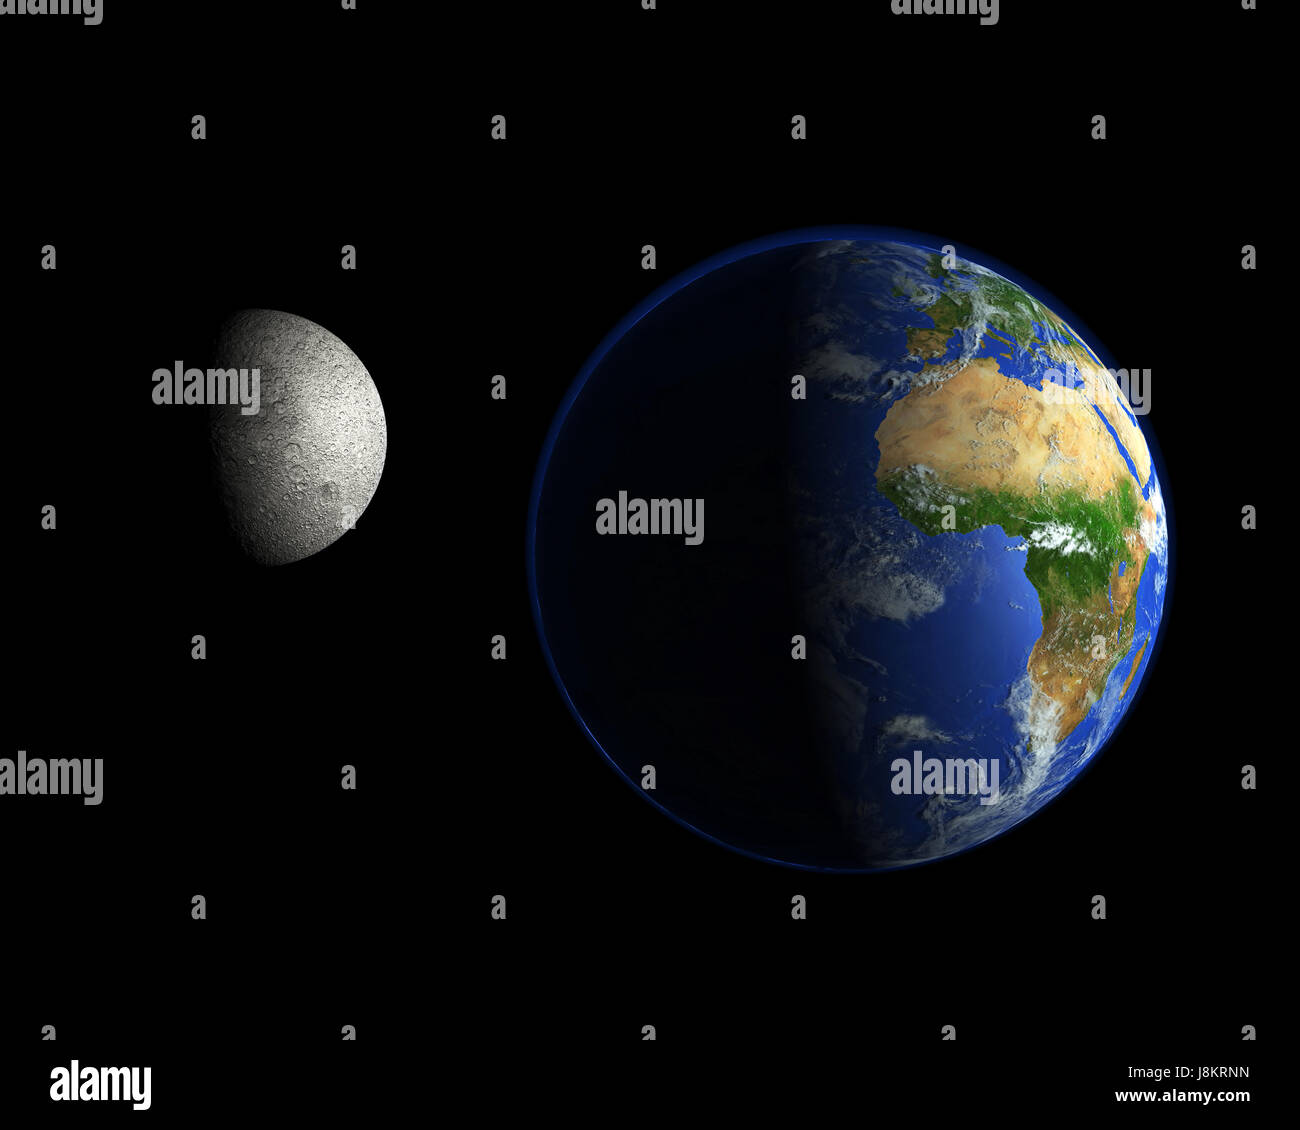 Blue moon solar system globe planet earth world atlas map of blue moon solar system globe planet earth world atlas map of the world gumiabroncs Image collections